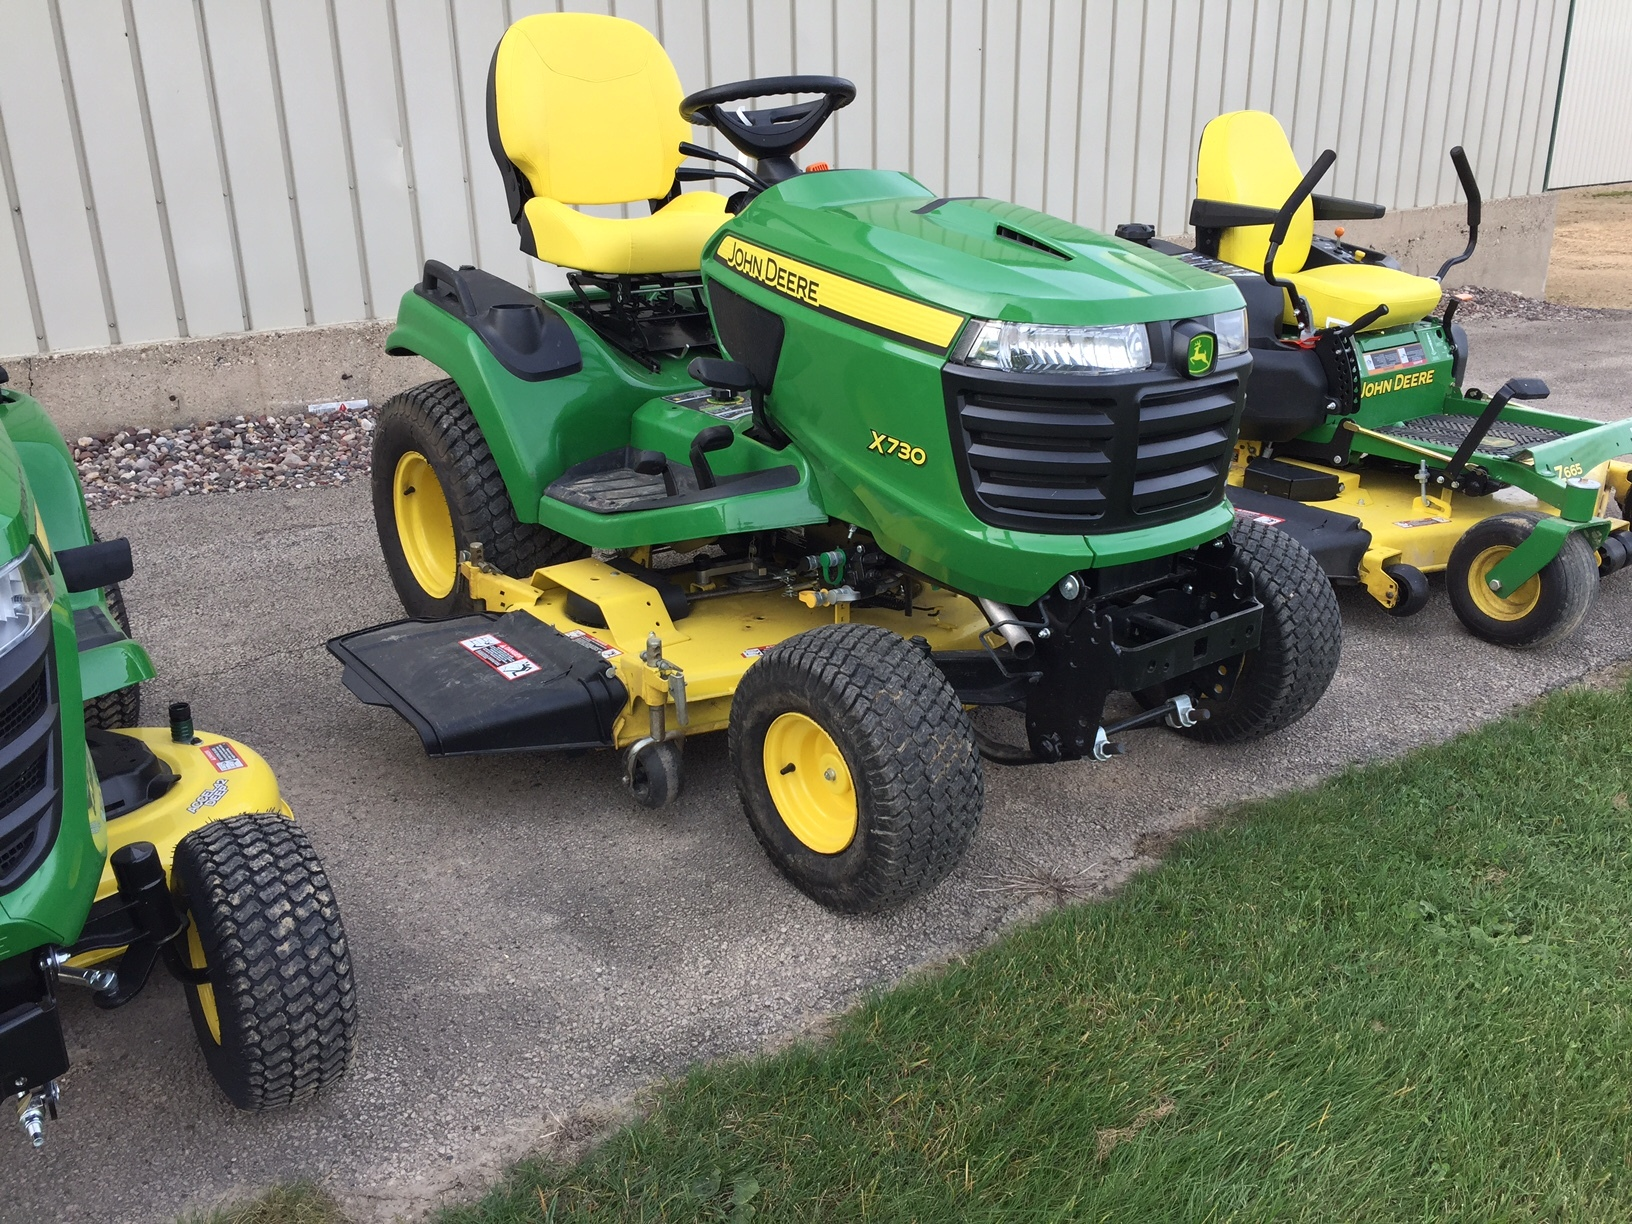 John deere x730 lawn garden tractors for sale 65503 for Lawn and garden implements